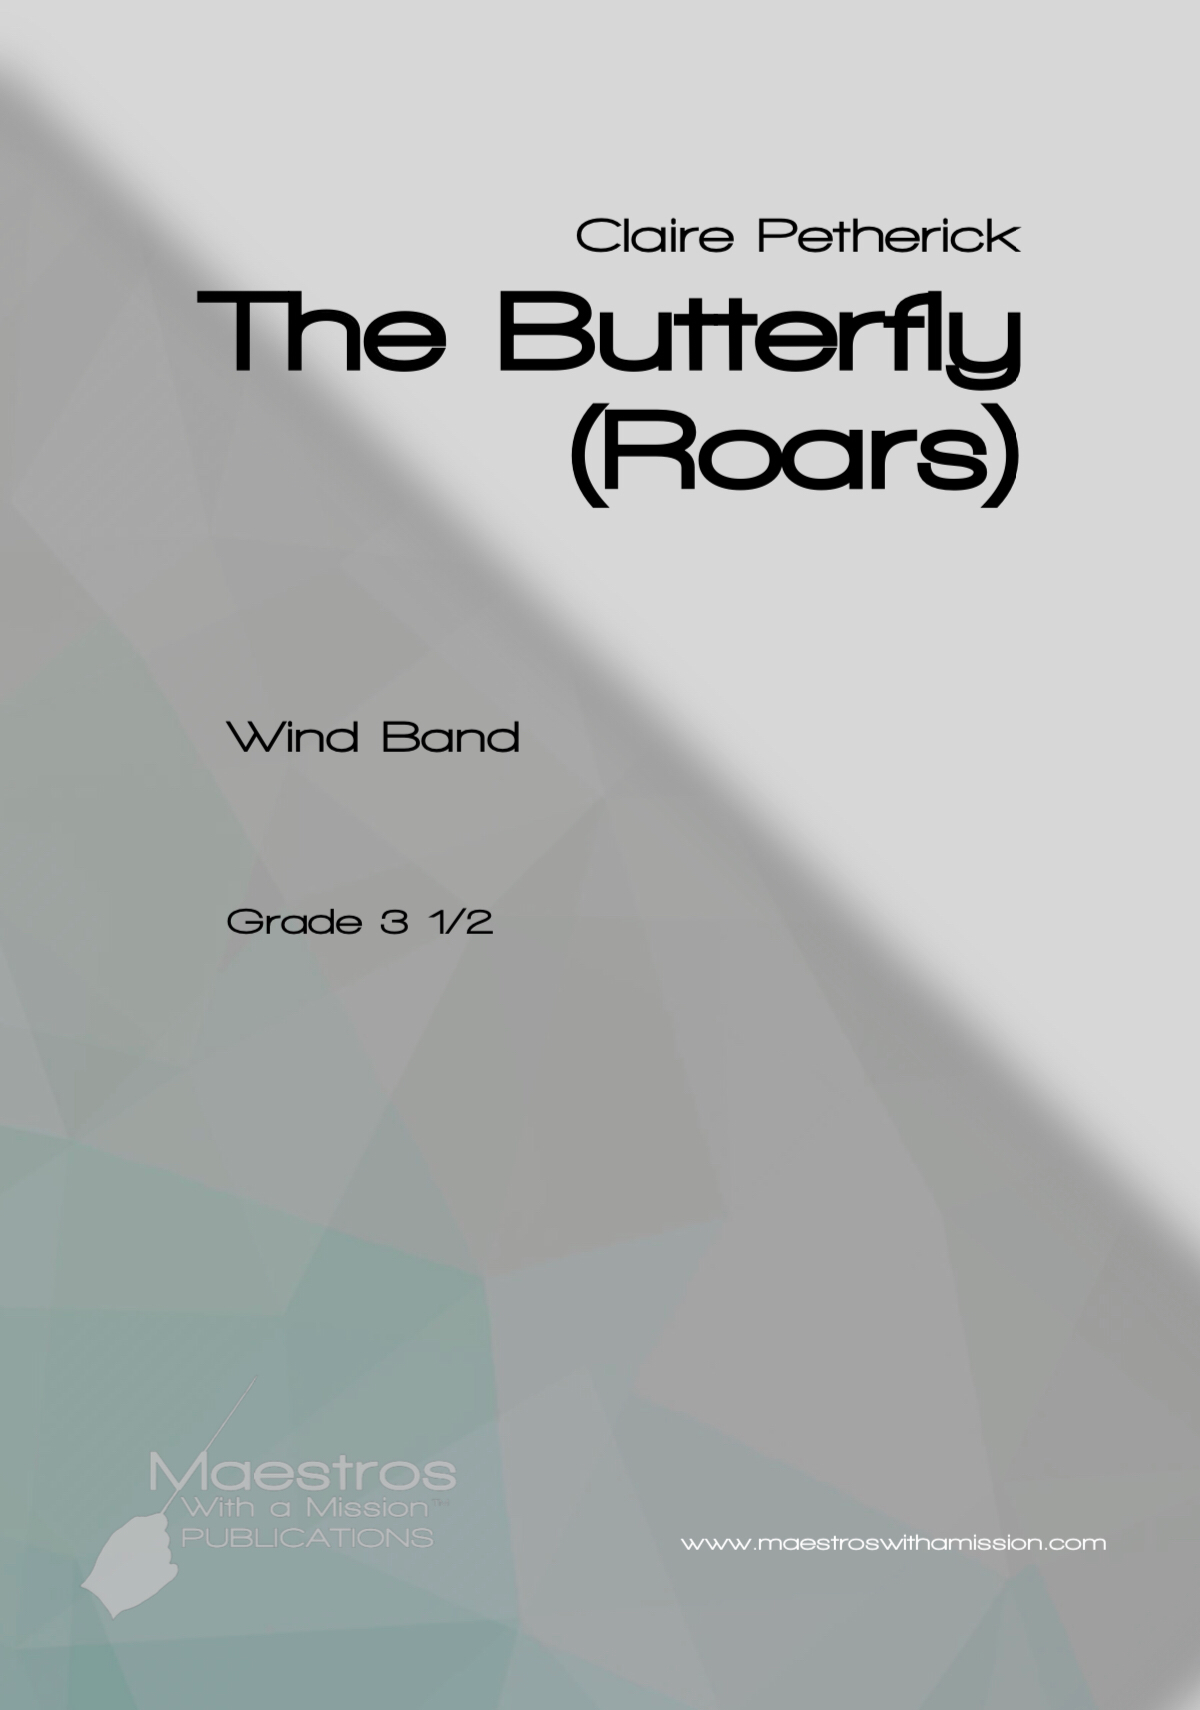 The Butterfly (Roars) by Claire Petherick